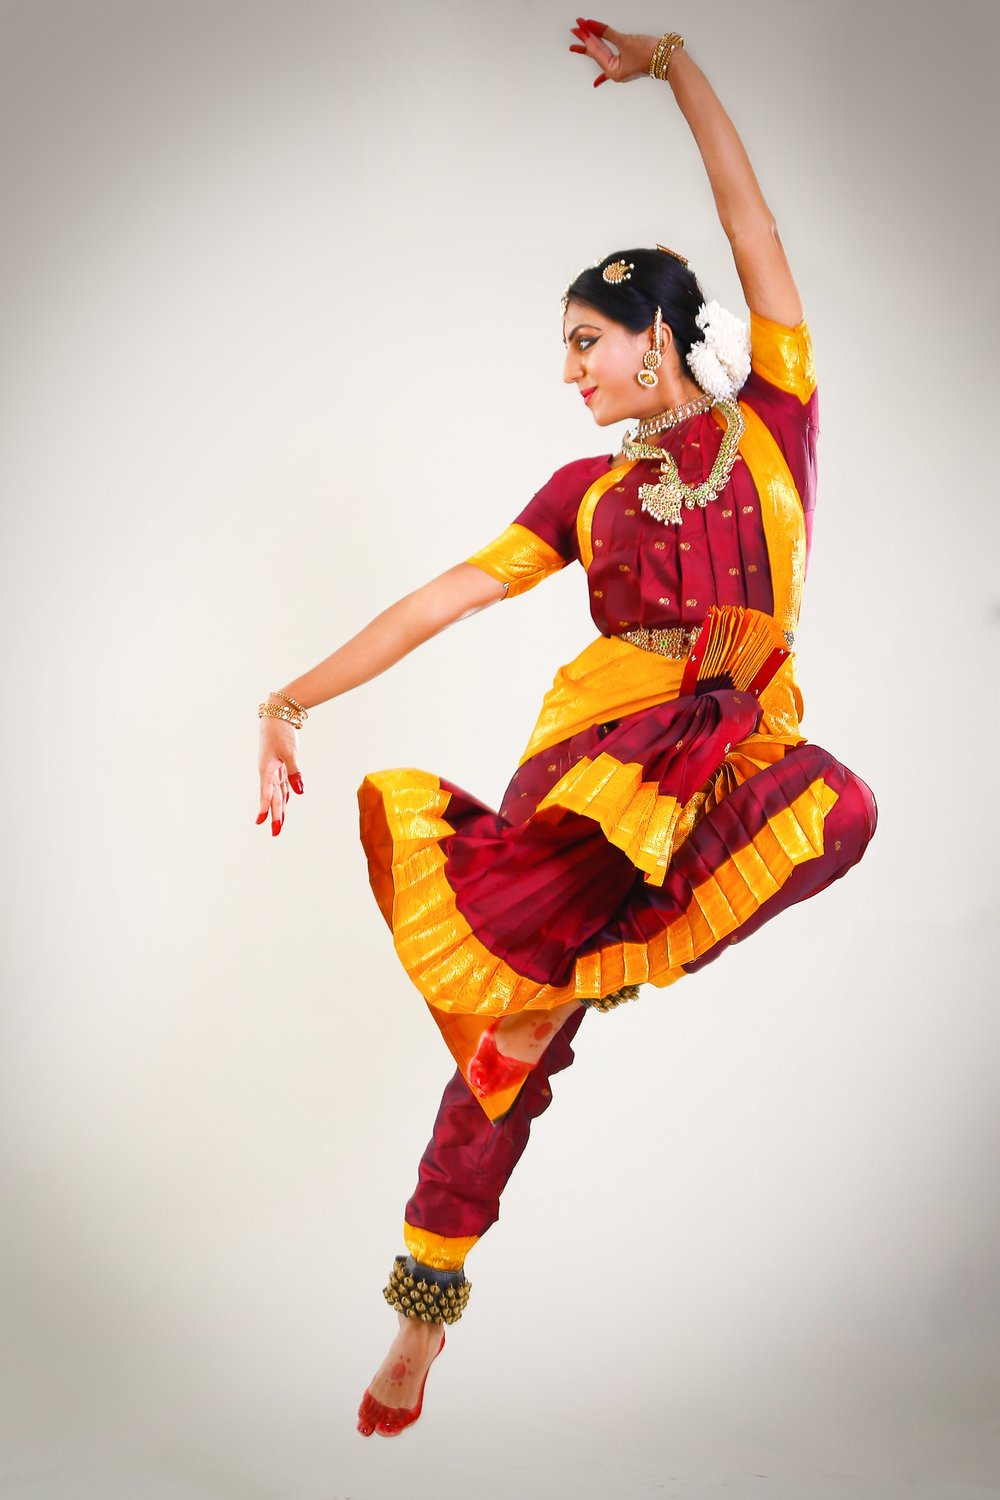 - Srinidhi Raghavan started learning Bharatanatyam nearly thirty years ago and has performed globally over the decades. Born into a family of dancers, she was exposed to Bharatanatyam early on and formally started learning the art from her mother and guru, Usha Raghavan, and from guru, Malathy Thothadri at the tender age of four. She had her arangetram in Chennai in 1998 and her experiences with dance have spanned several cultures and countries, including those of the UK, Switzerland, France, Italy, Liechtenstein, Barbados, Canada, the US and of course India, during the prestigious December festivals in Chennai. Known for her